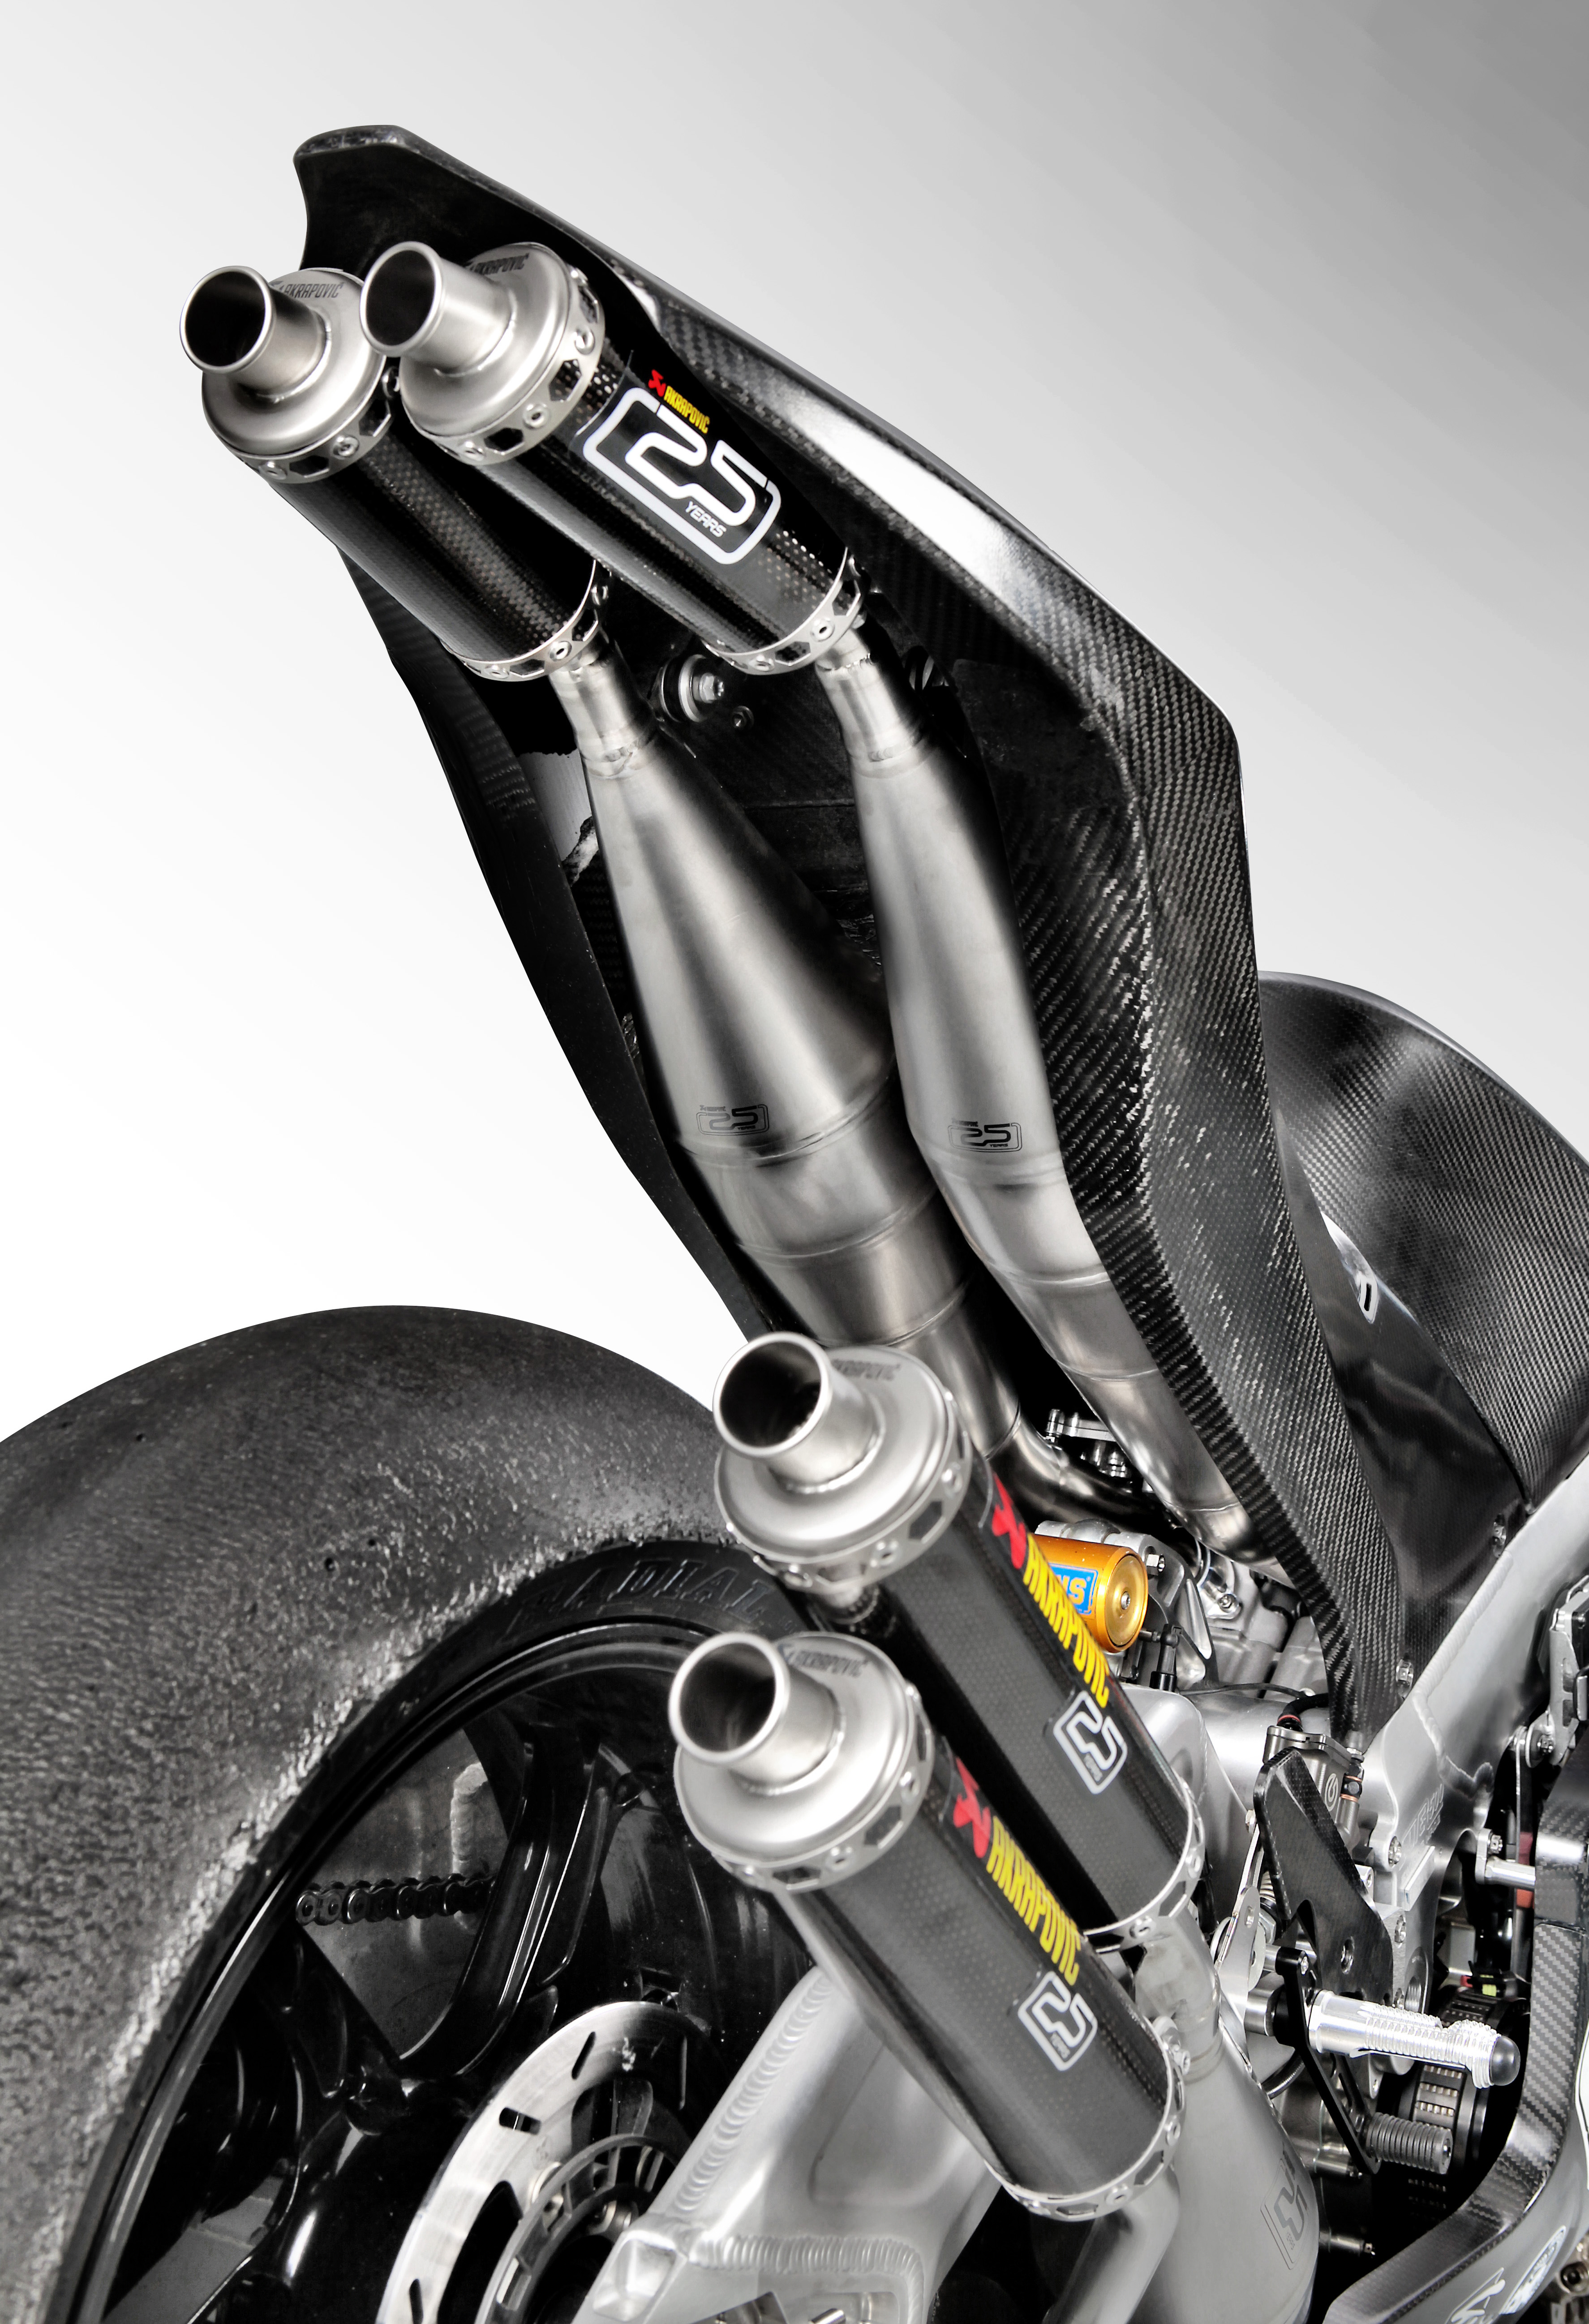 Akrapovič Heads to the 'Island' with Suter and Its First Two